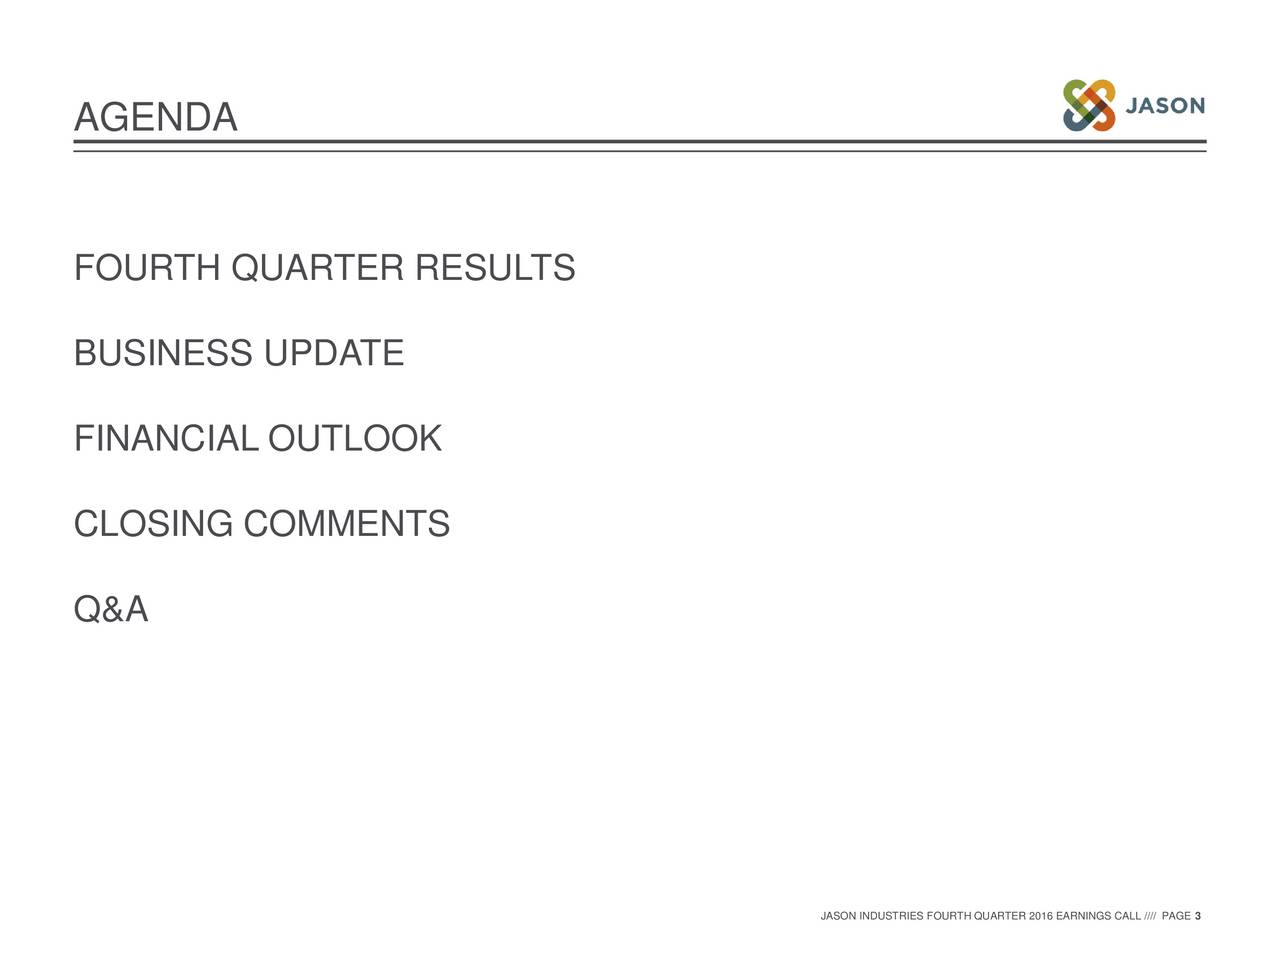 FOURTH QUARTER RESULTS BUSINESS UPDATE FINANCIAL OUTLOOK CLOSING COMMENTS Q&A JASON INDUSTRIES FOURTH QUARTER 2016 EARNINGS CALL //// PAGE 3